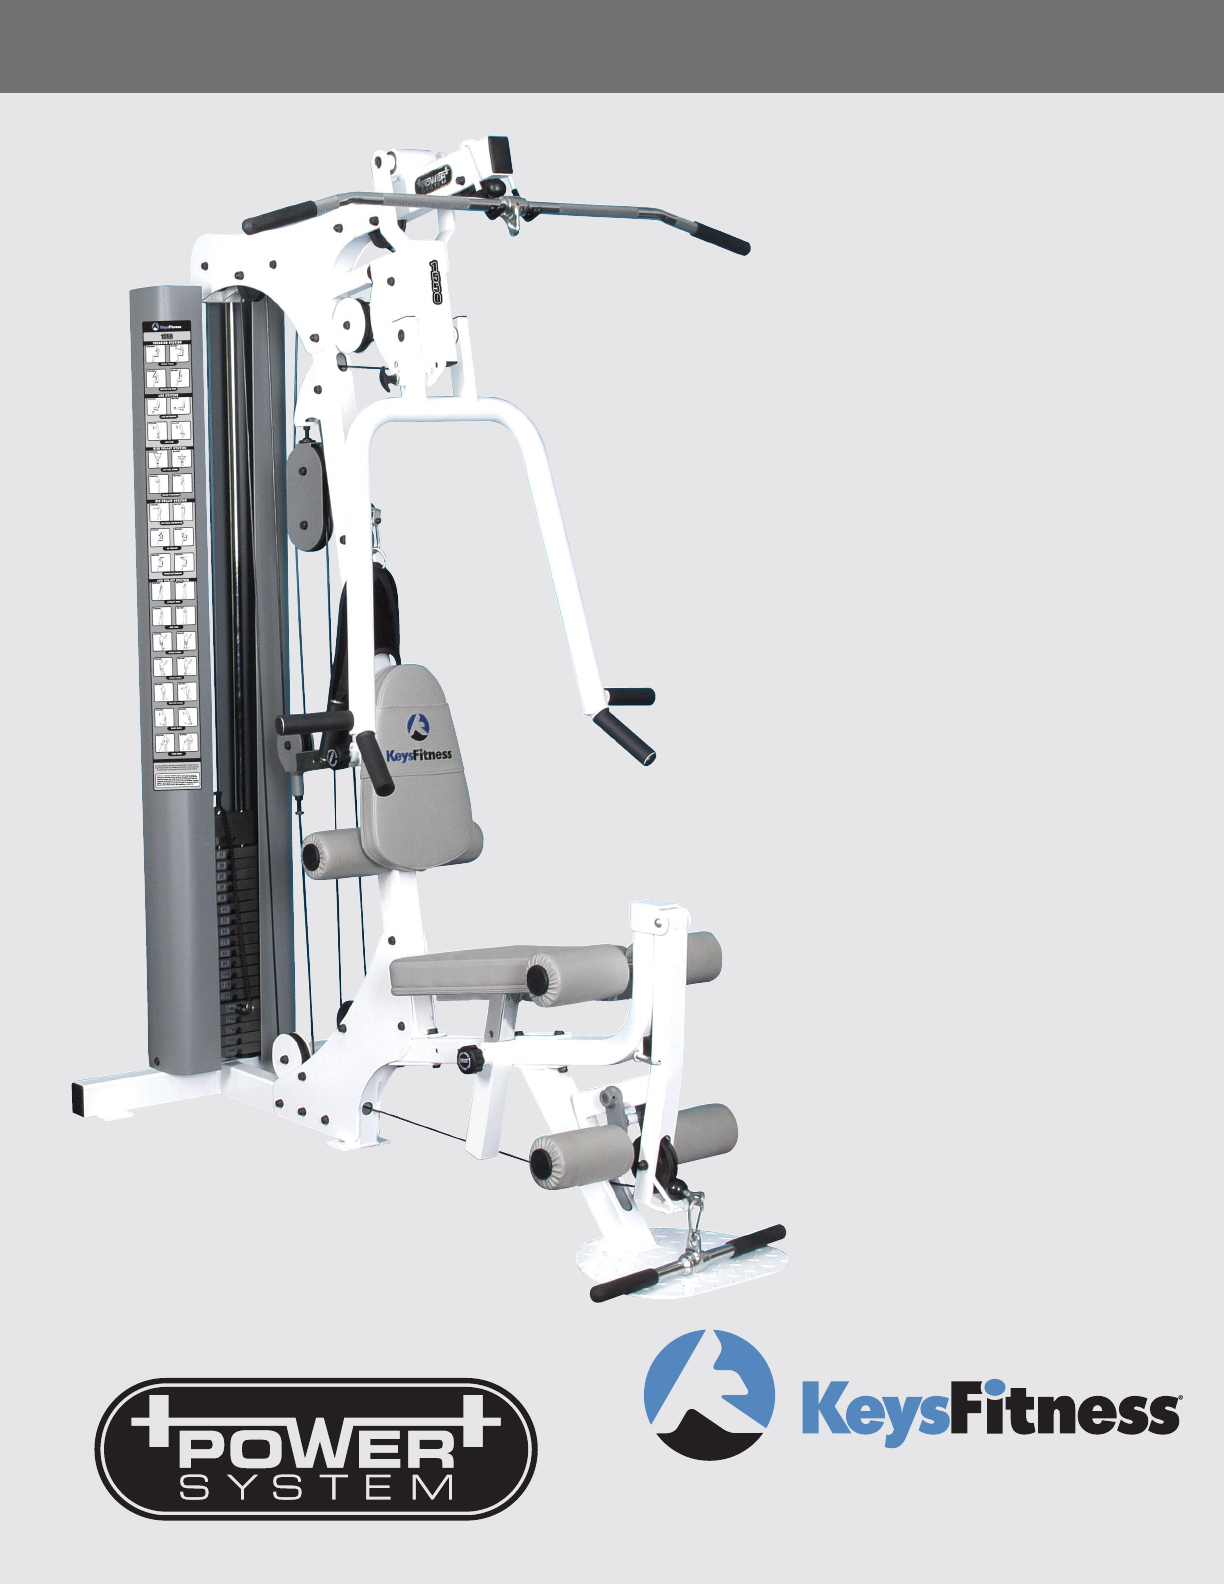 keys fitness home gym kps 1550 user guide manualsonline com rh fitness manualsonline com Philips DVD Player Manual Philips Flat TV Manual